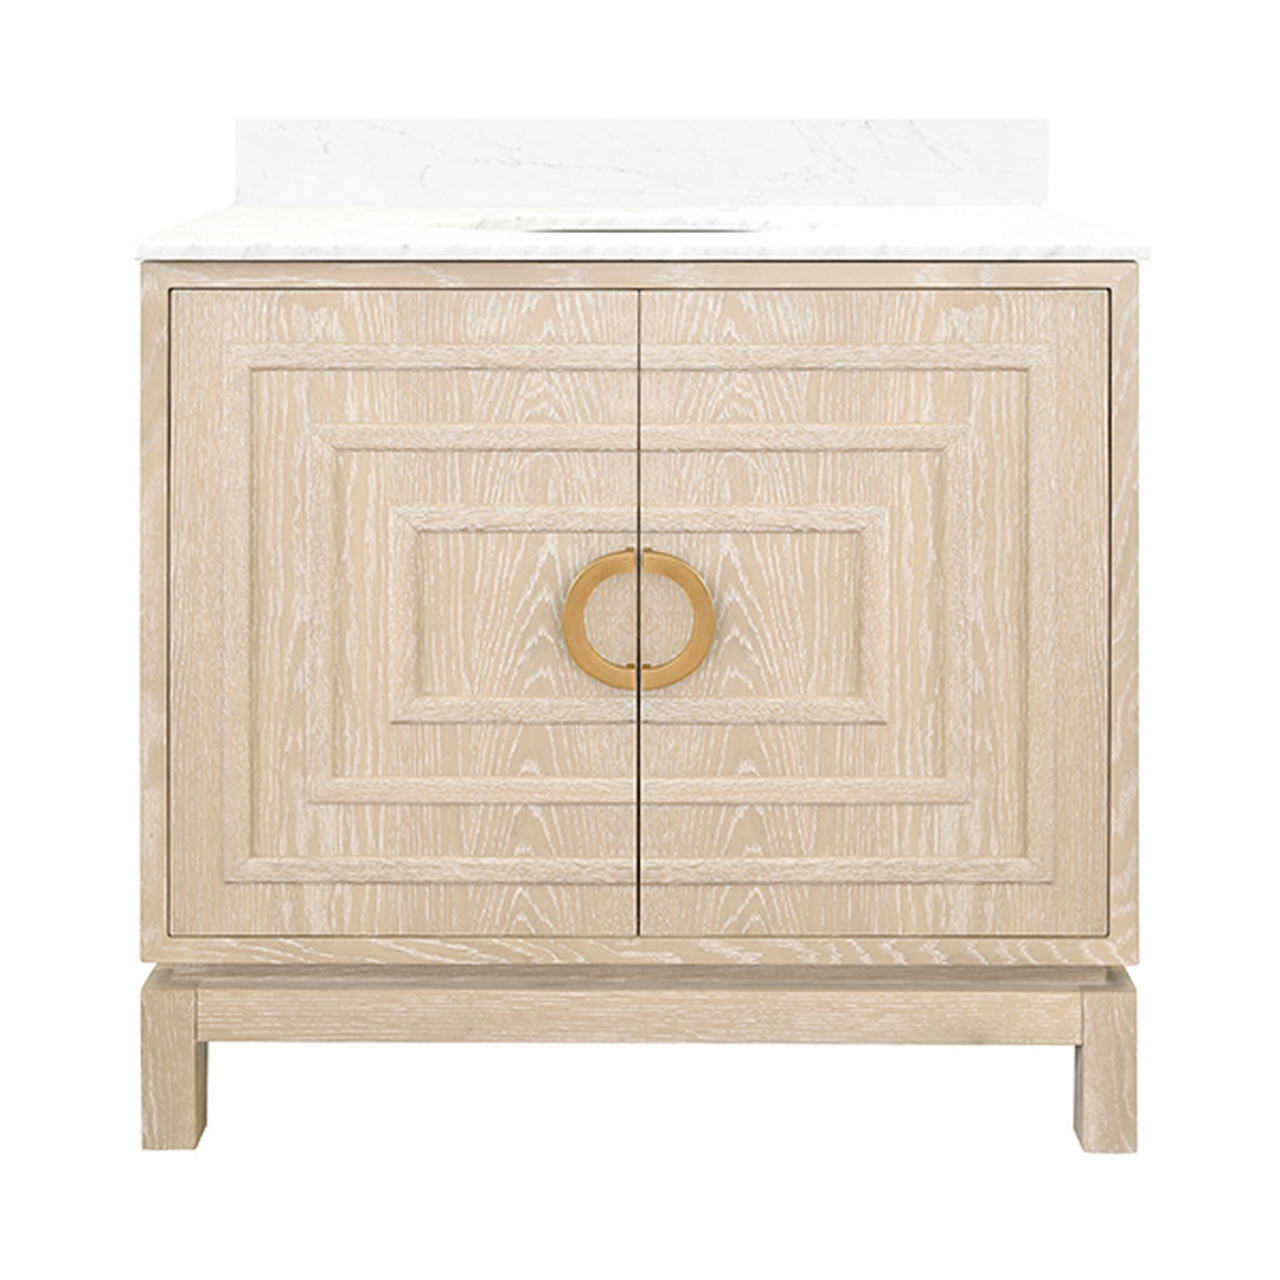 """36"""" Issac Edwards Collection Bath Vanity in Matte Cerused Oak Finsih with White Marble Top and Porcelain Sink"""